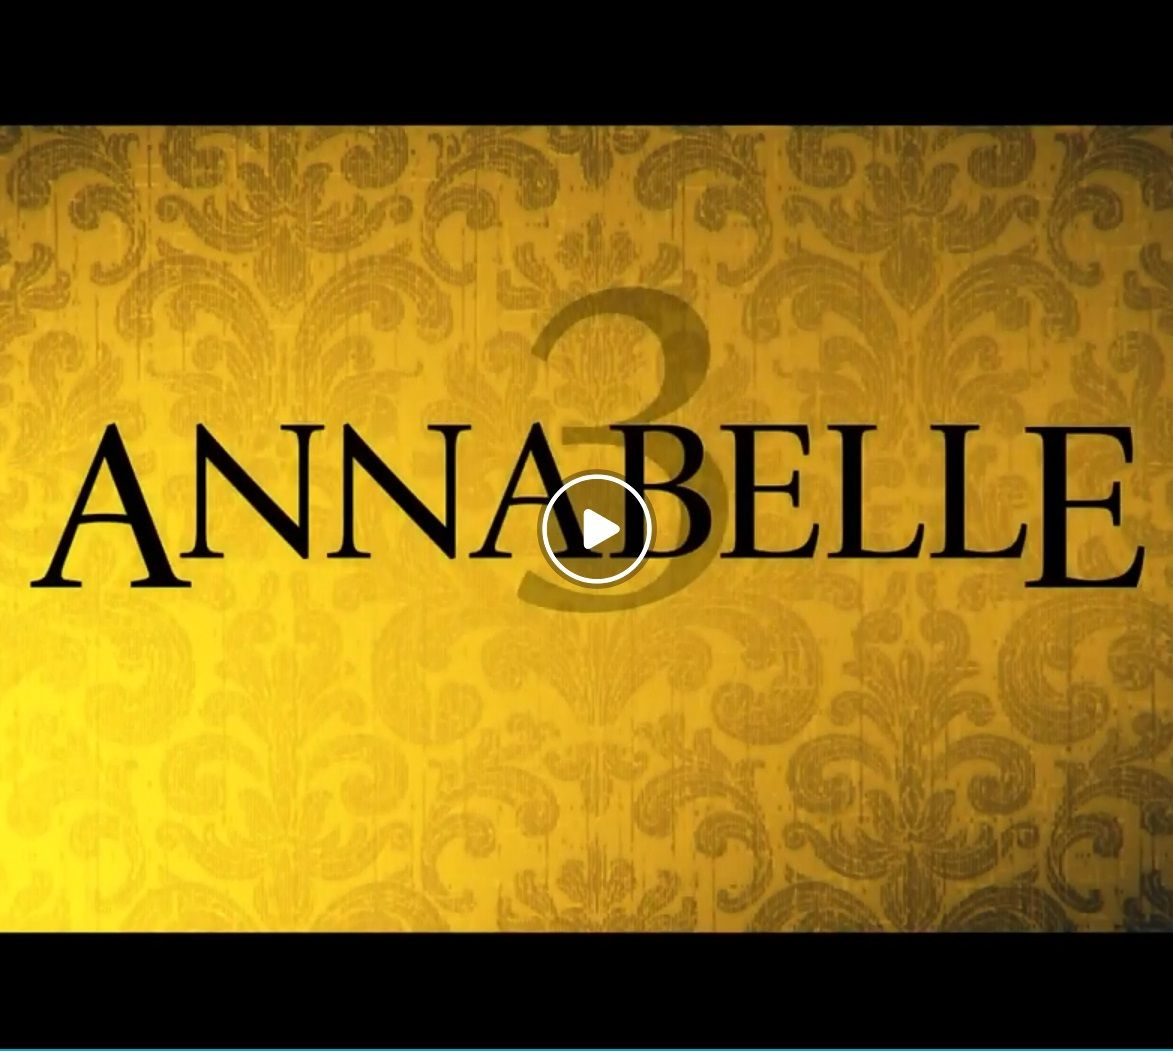 Cb01 Annabelle 3 Streaming Ita Hd Cb01 Thriller Film Completi Film